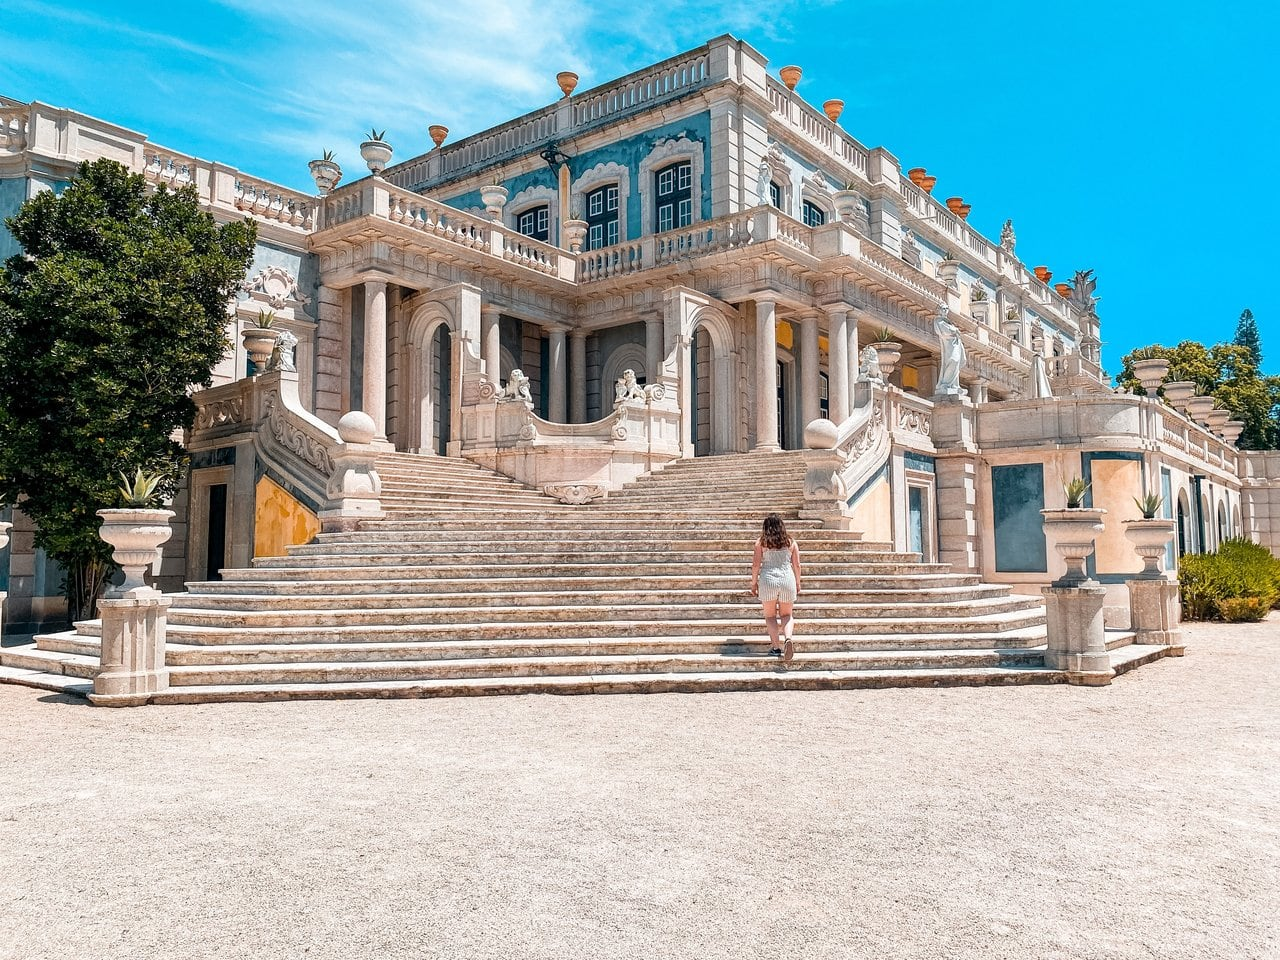 National Palace of Queluz day trip from Lisbon